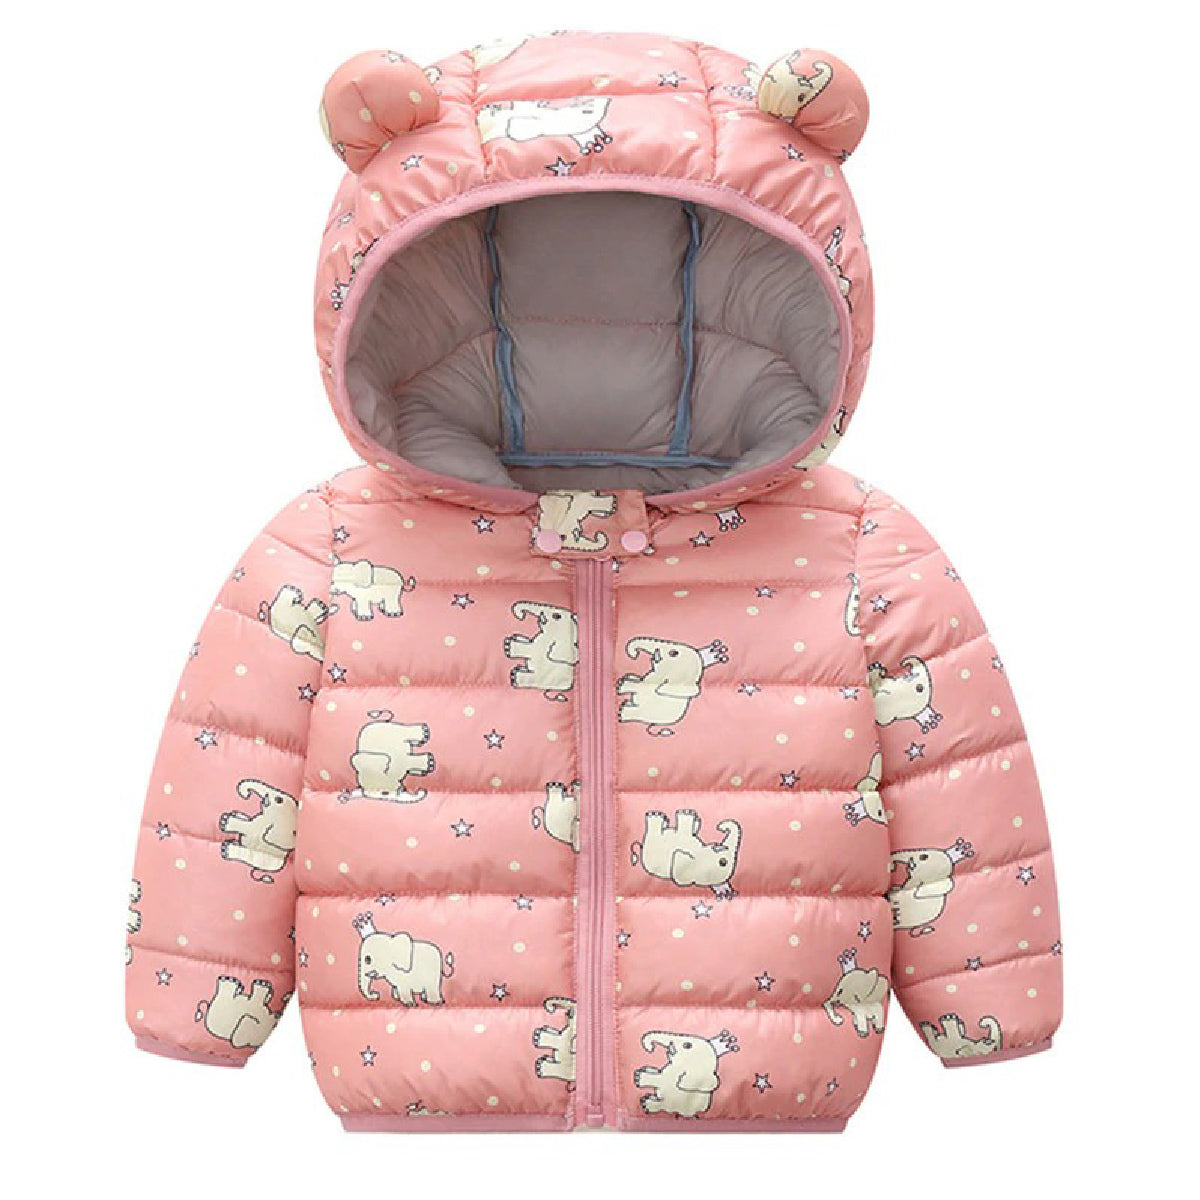 Baby Zone Animal Cartoon Hooded Jacket ™